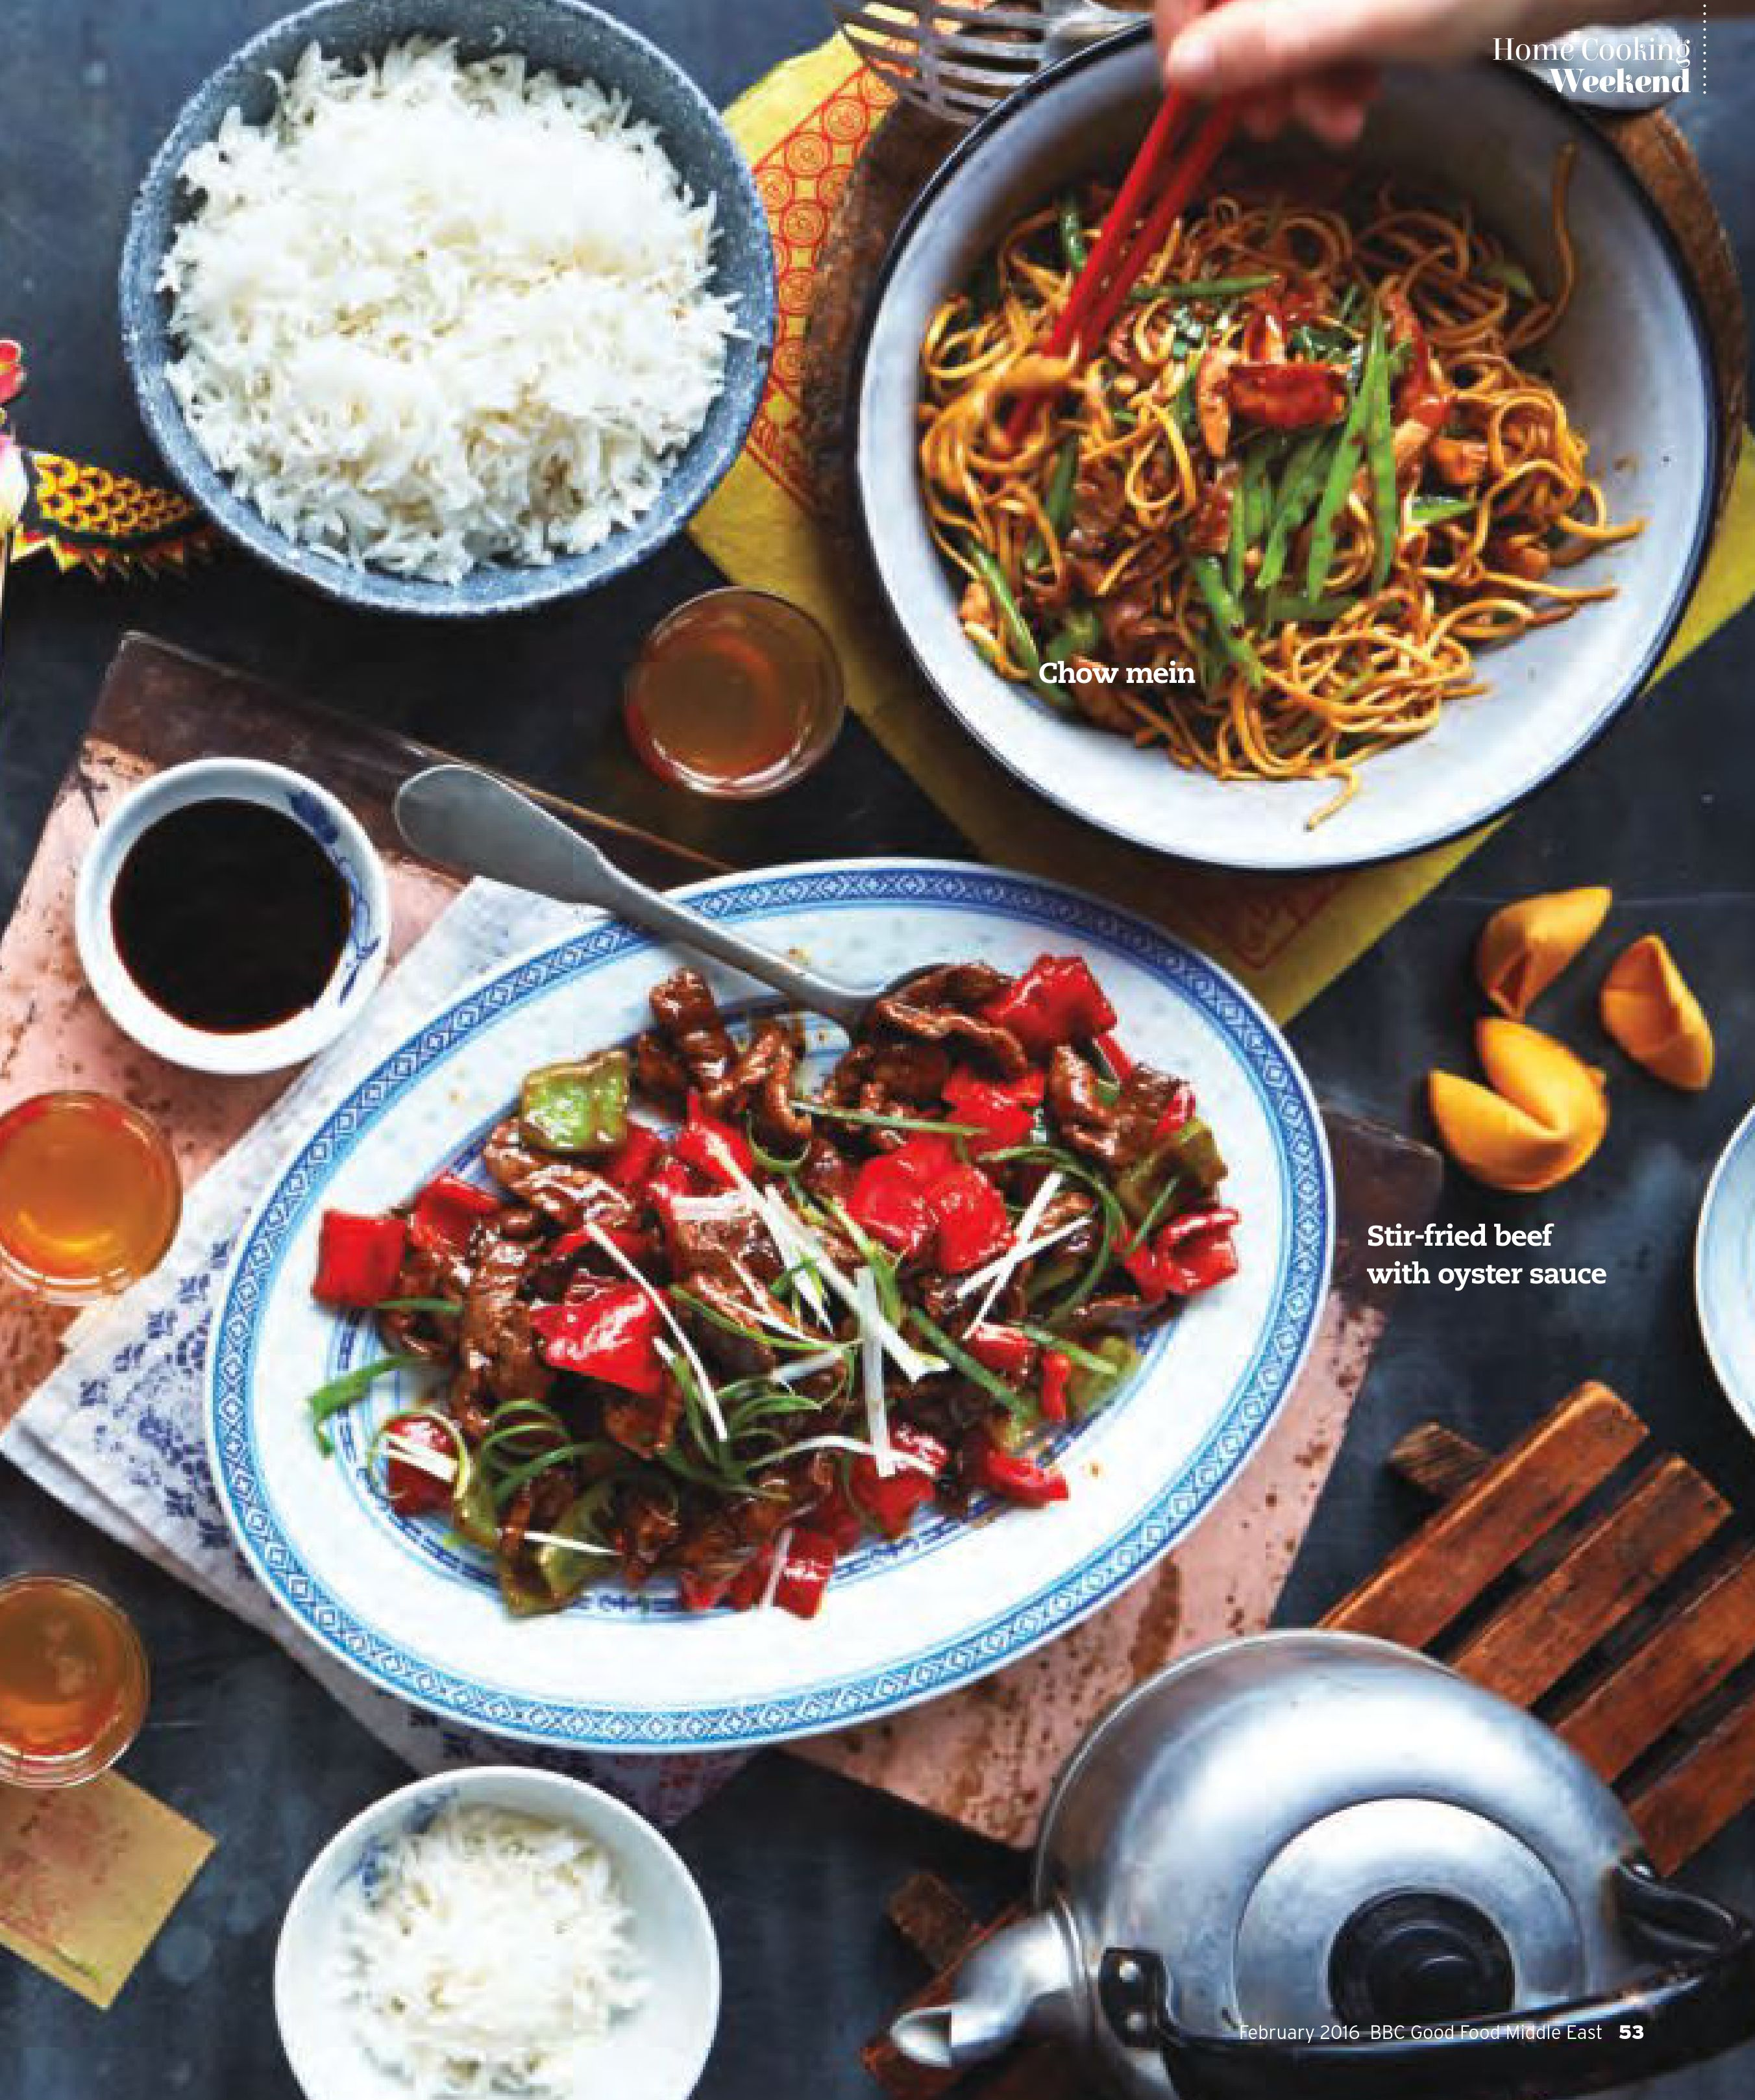 Chow mein and stir fried beef with oyster sauce food recipe bbc chow mein and stir fried beef with oyster sauce food recipe forumfinder Images